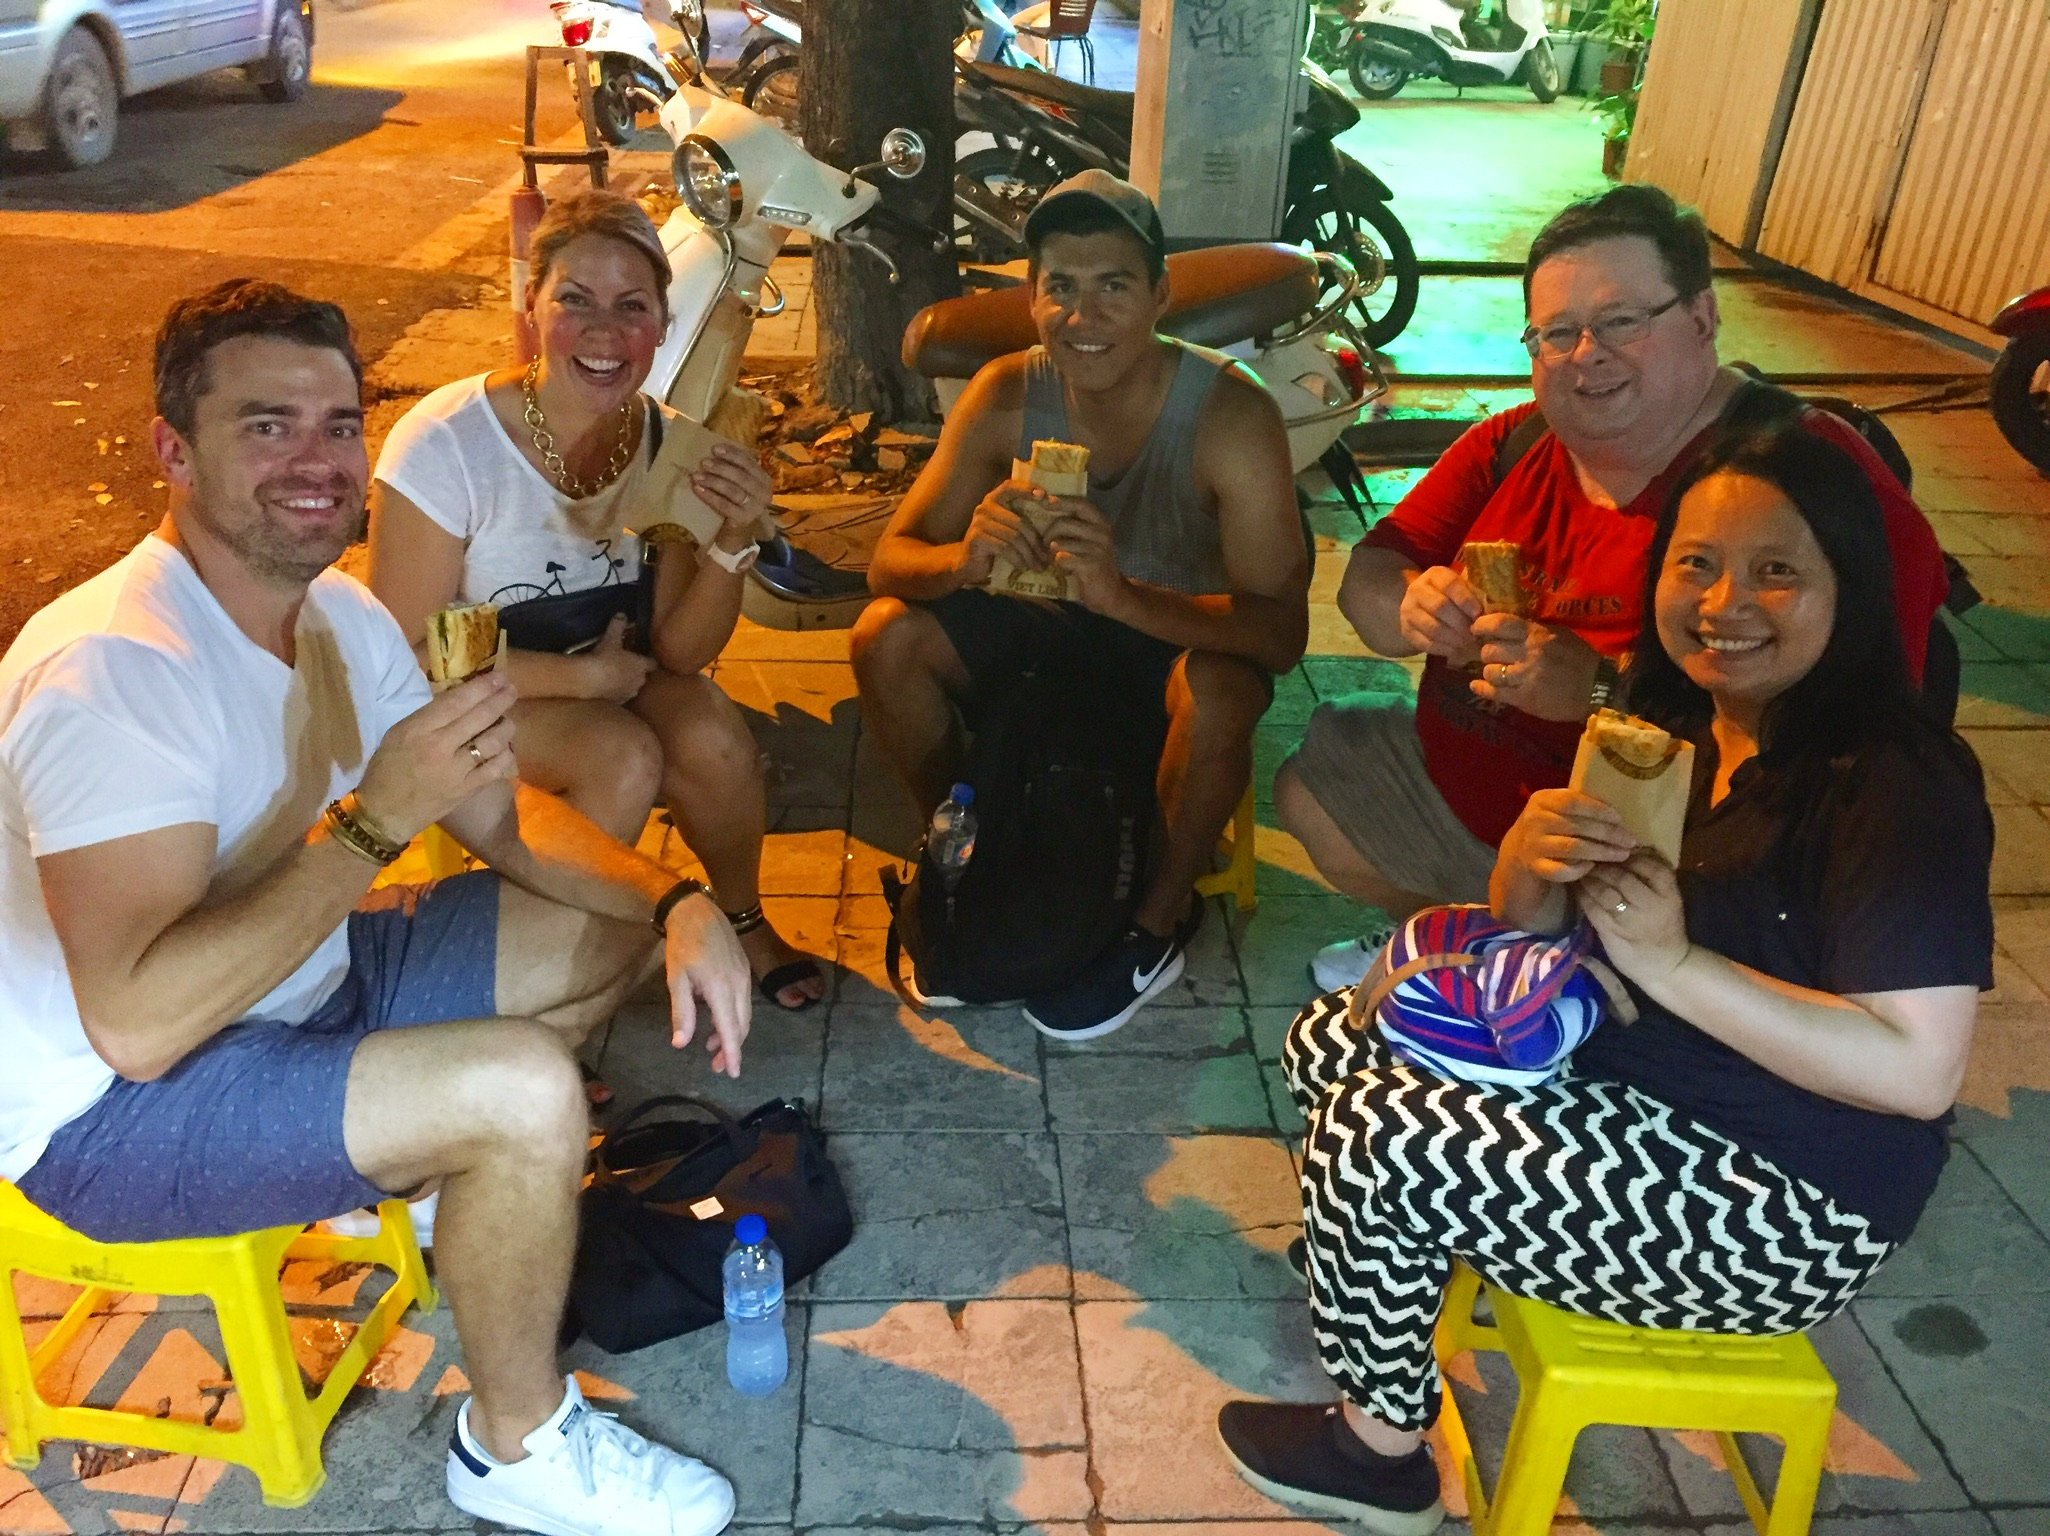 the gang from our Street Food Tour enjoying Bahn Mi (pork sandwich)